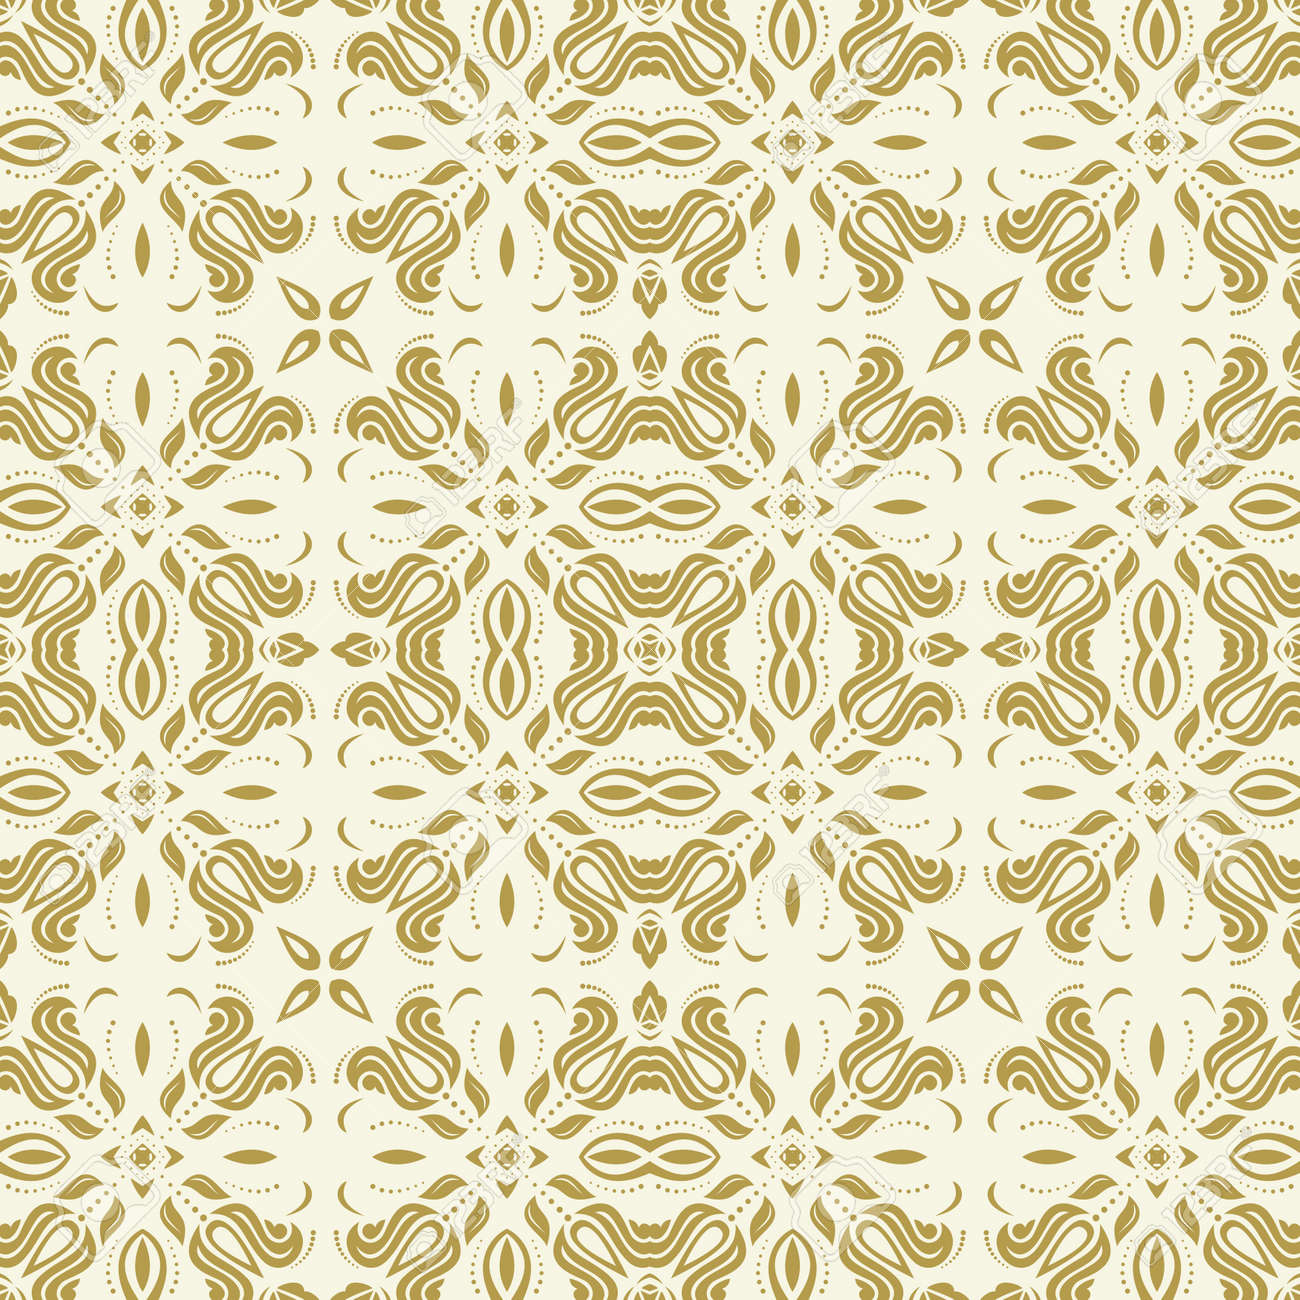 Orient classic pattern. Seamless abstract golden background with vintage elements. Orient background. Ornament for wallpaper and packaging - 169499778